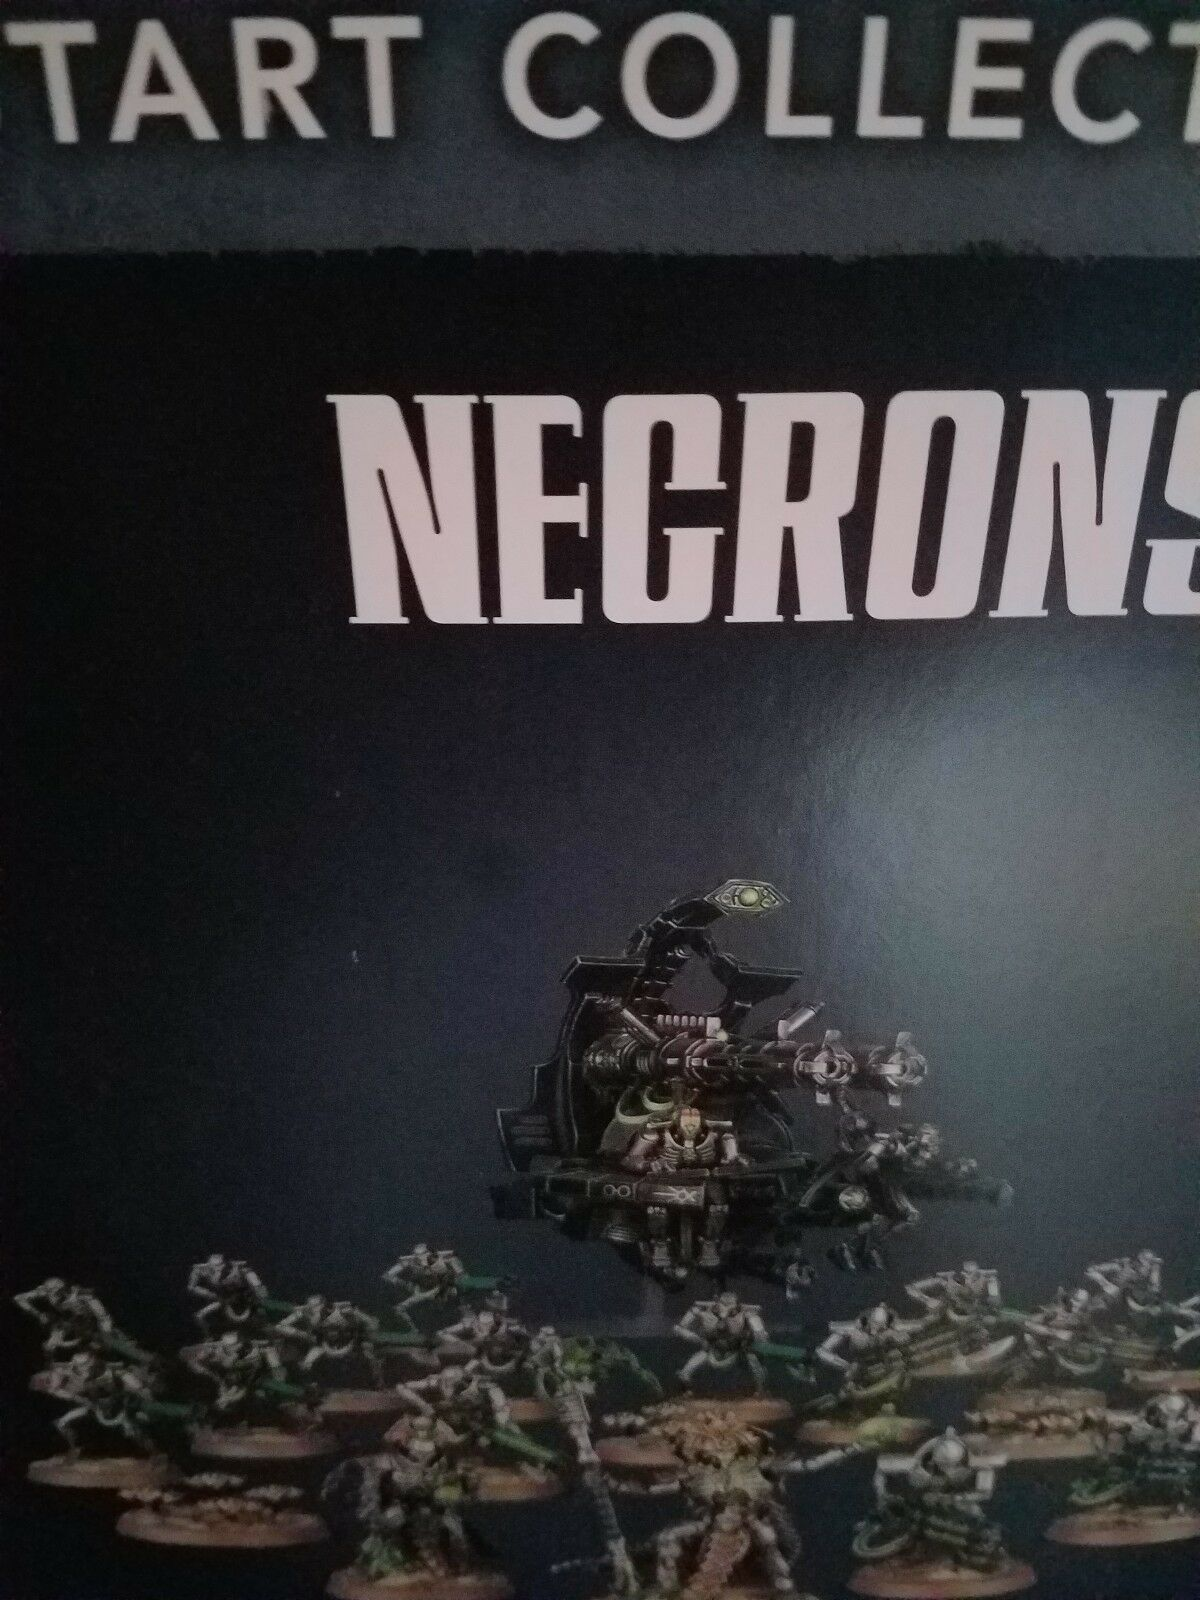 Start Collecting Necrons Warhammer 40k 40,000 Games Workhop New!